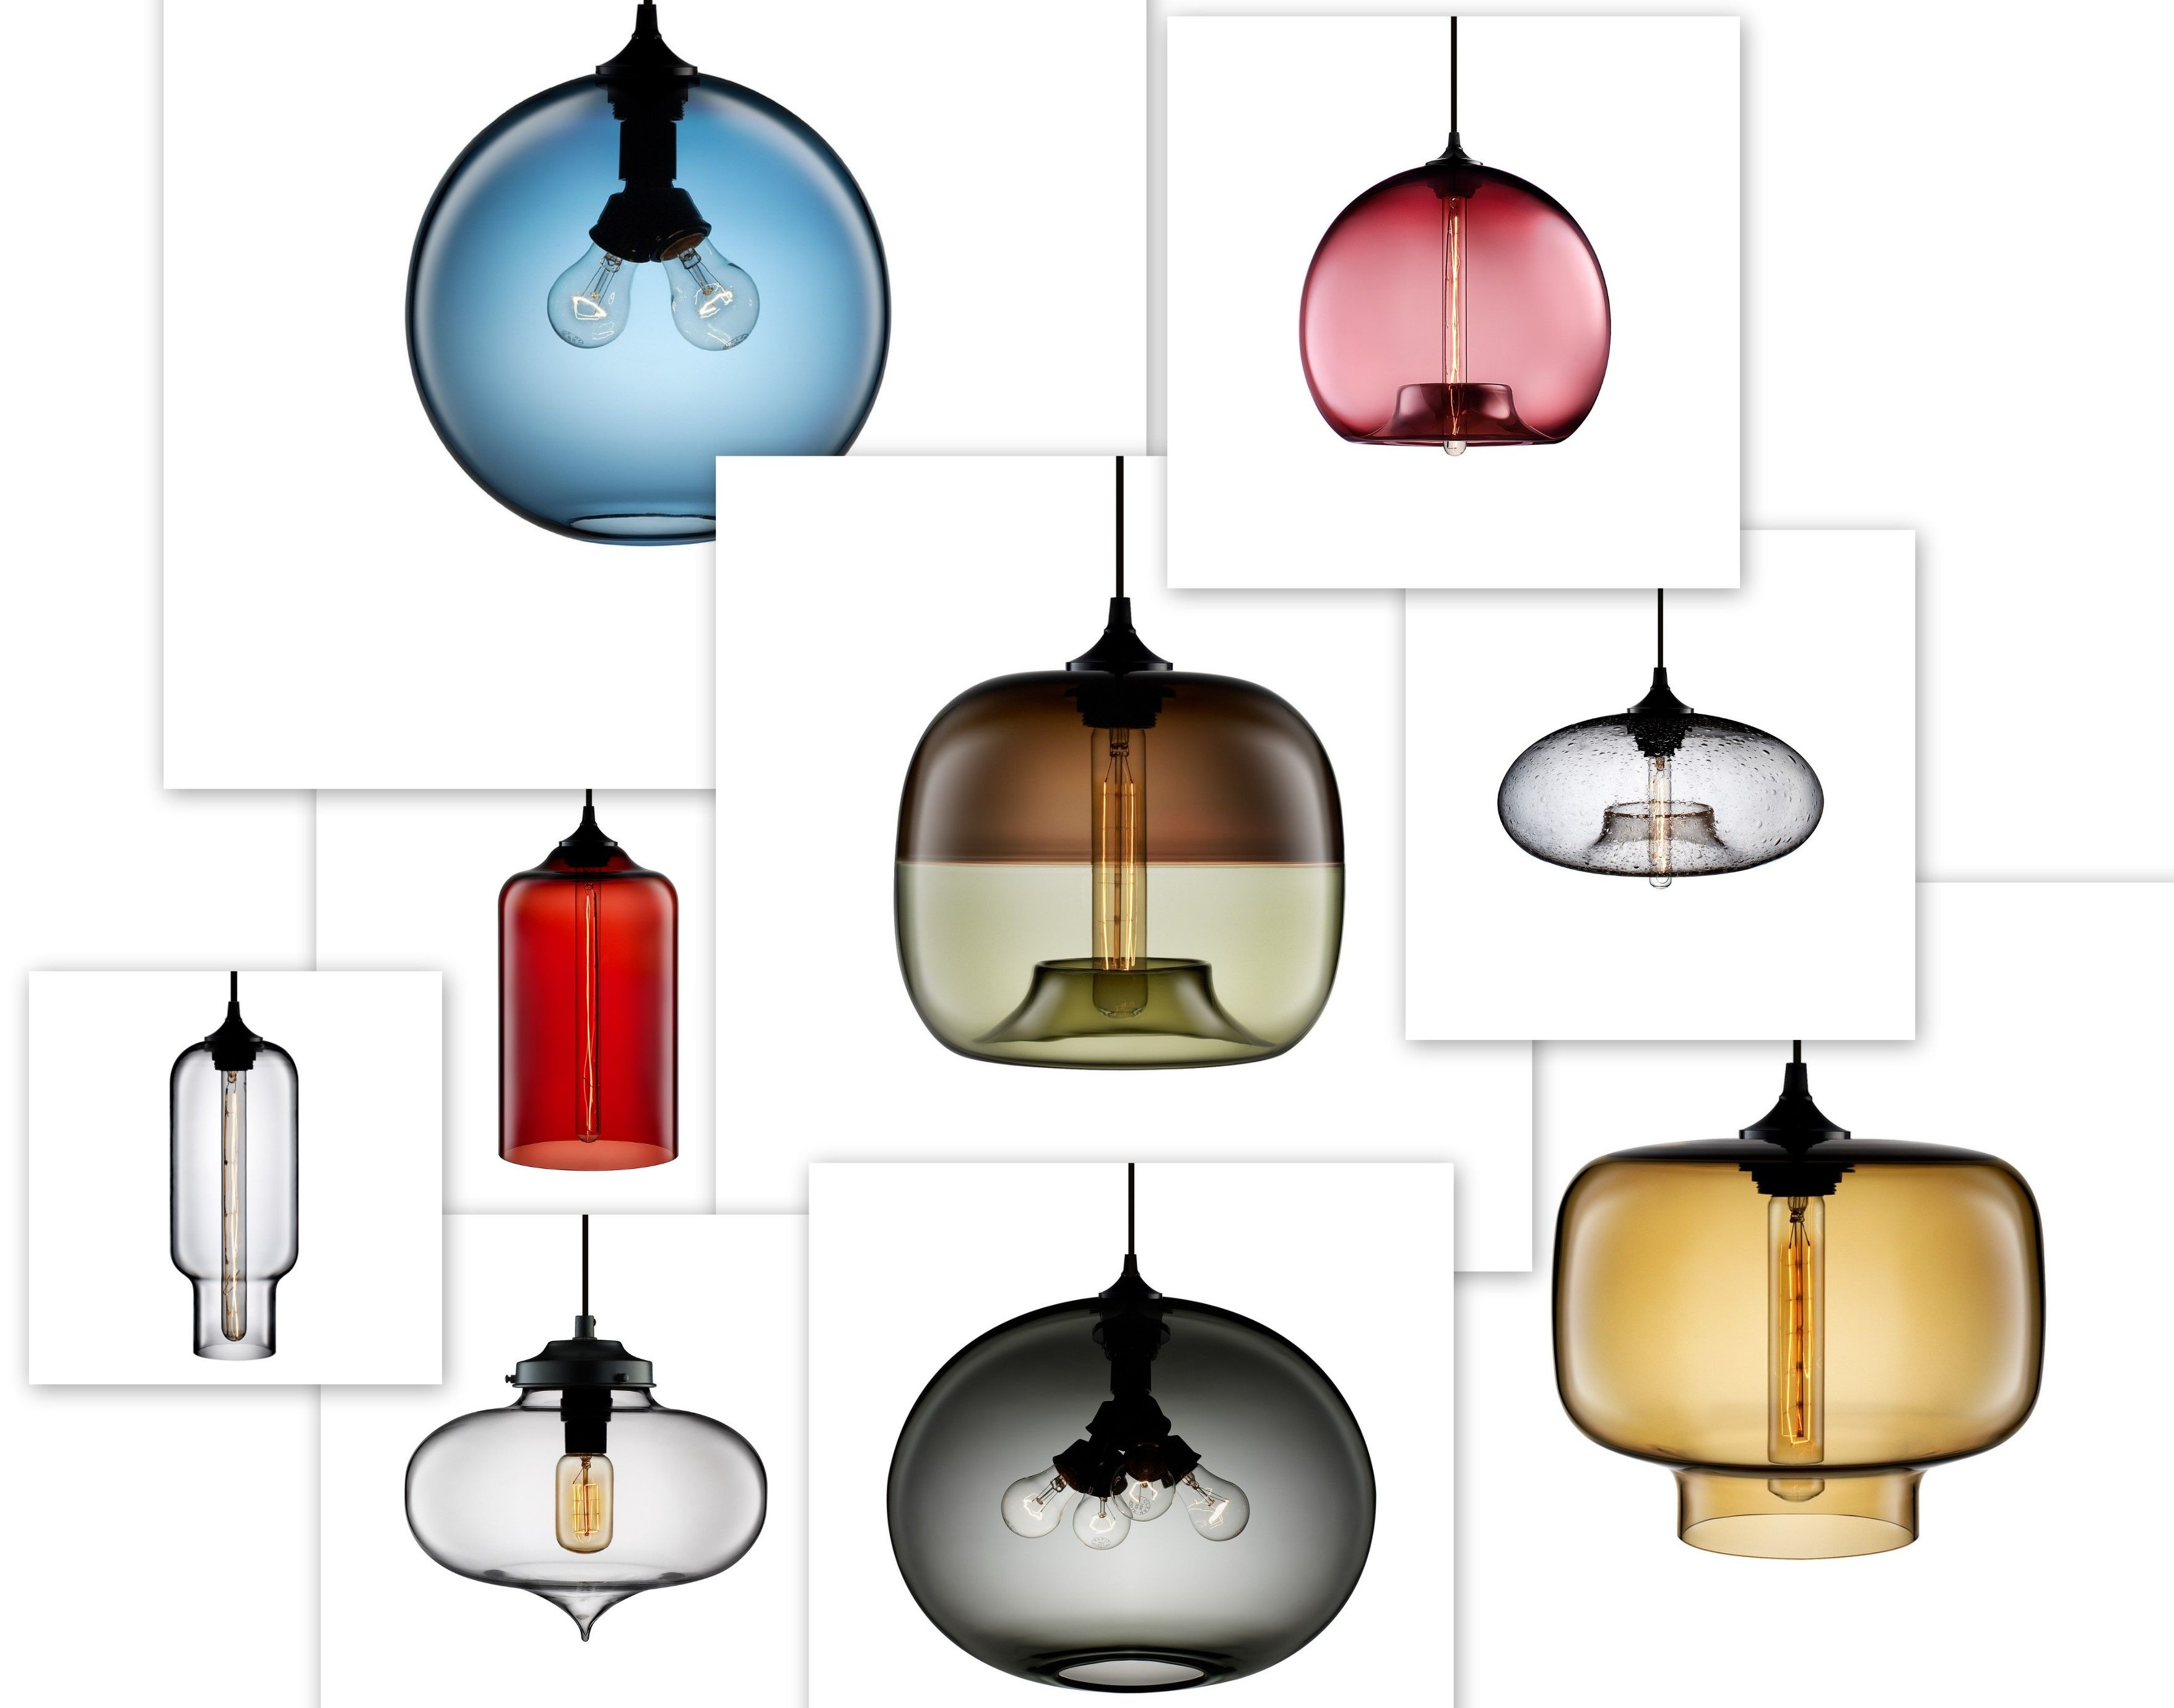 Hand blown glass pendant lights the pride of niche glass pendants glass pendant lights collage by niche modern they have a selection at prices aloadofball Image collections